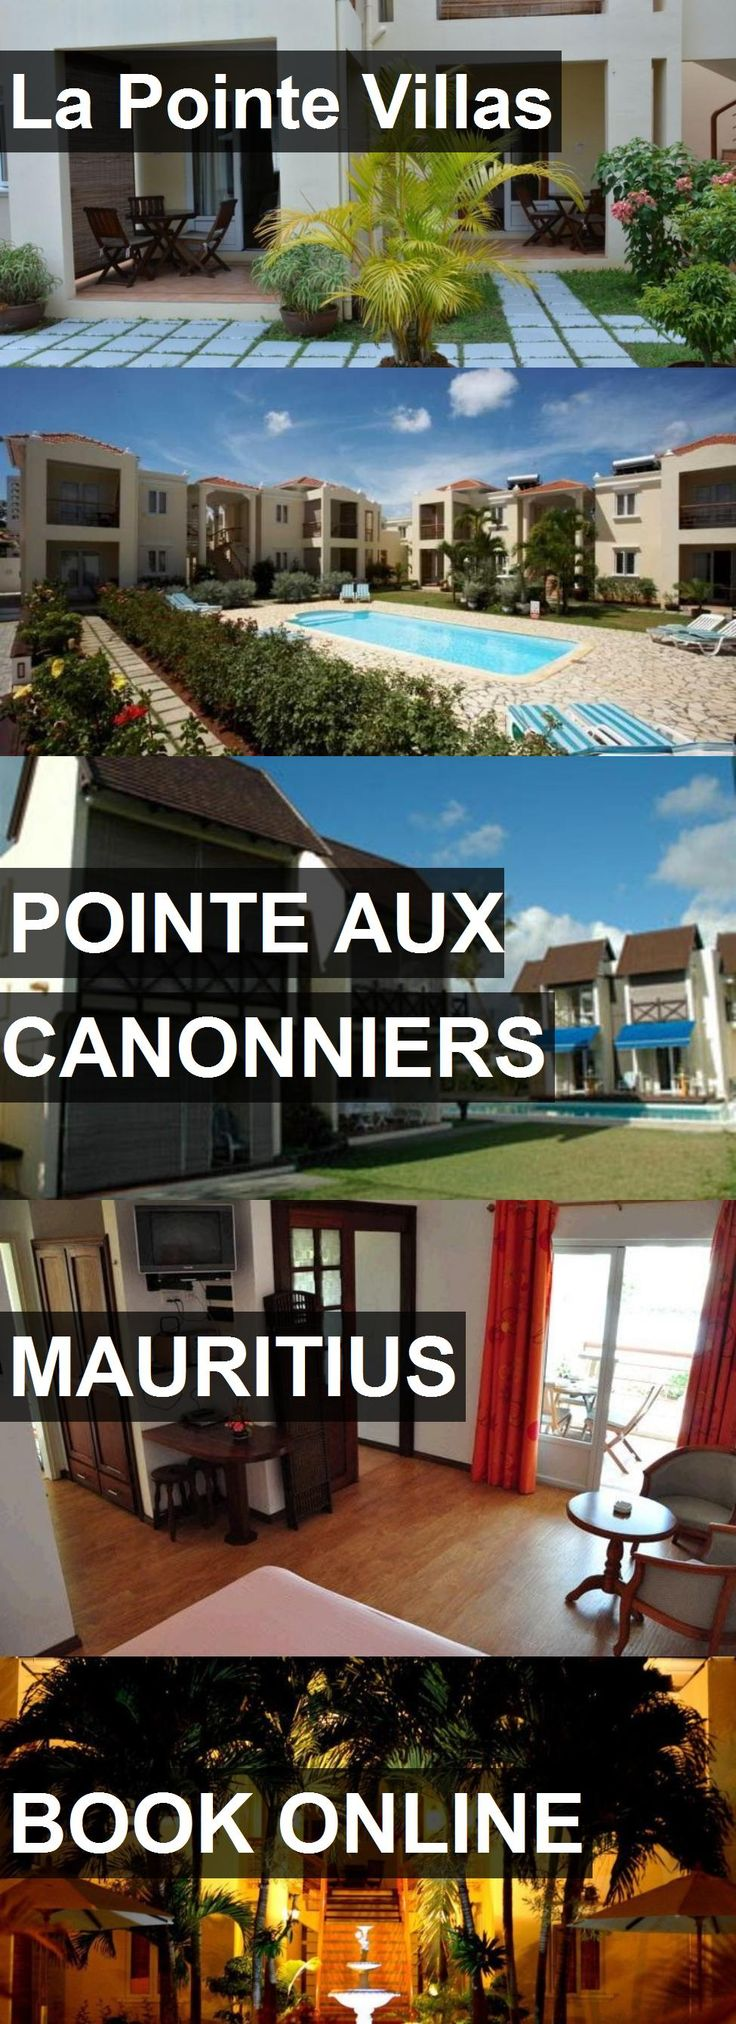 Hotel La Pointe Villas in Pointe aux Canonniers, Mauritius. For more information, photos, reviews and best prices please follow the link. #Mauritius #PointeauxCanonniers #travel #vacation #hotel